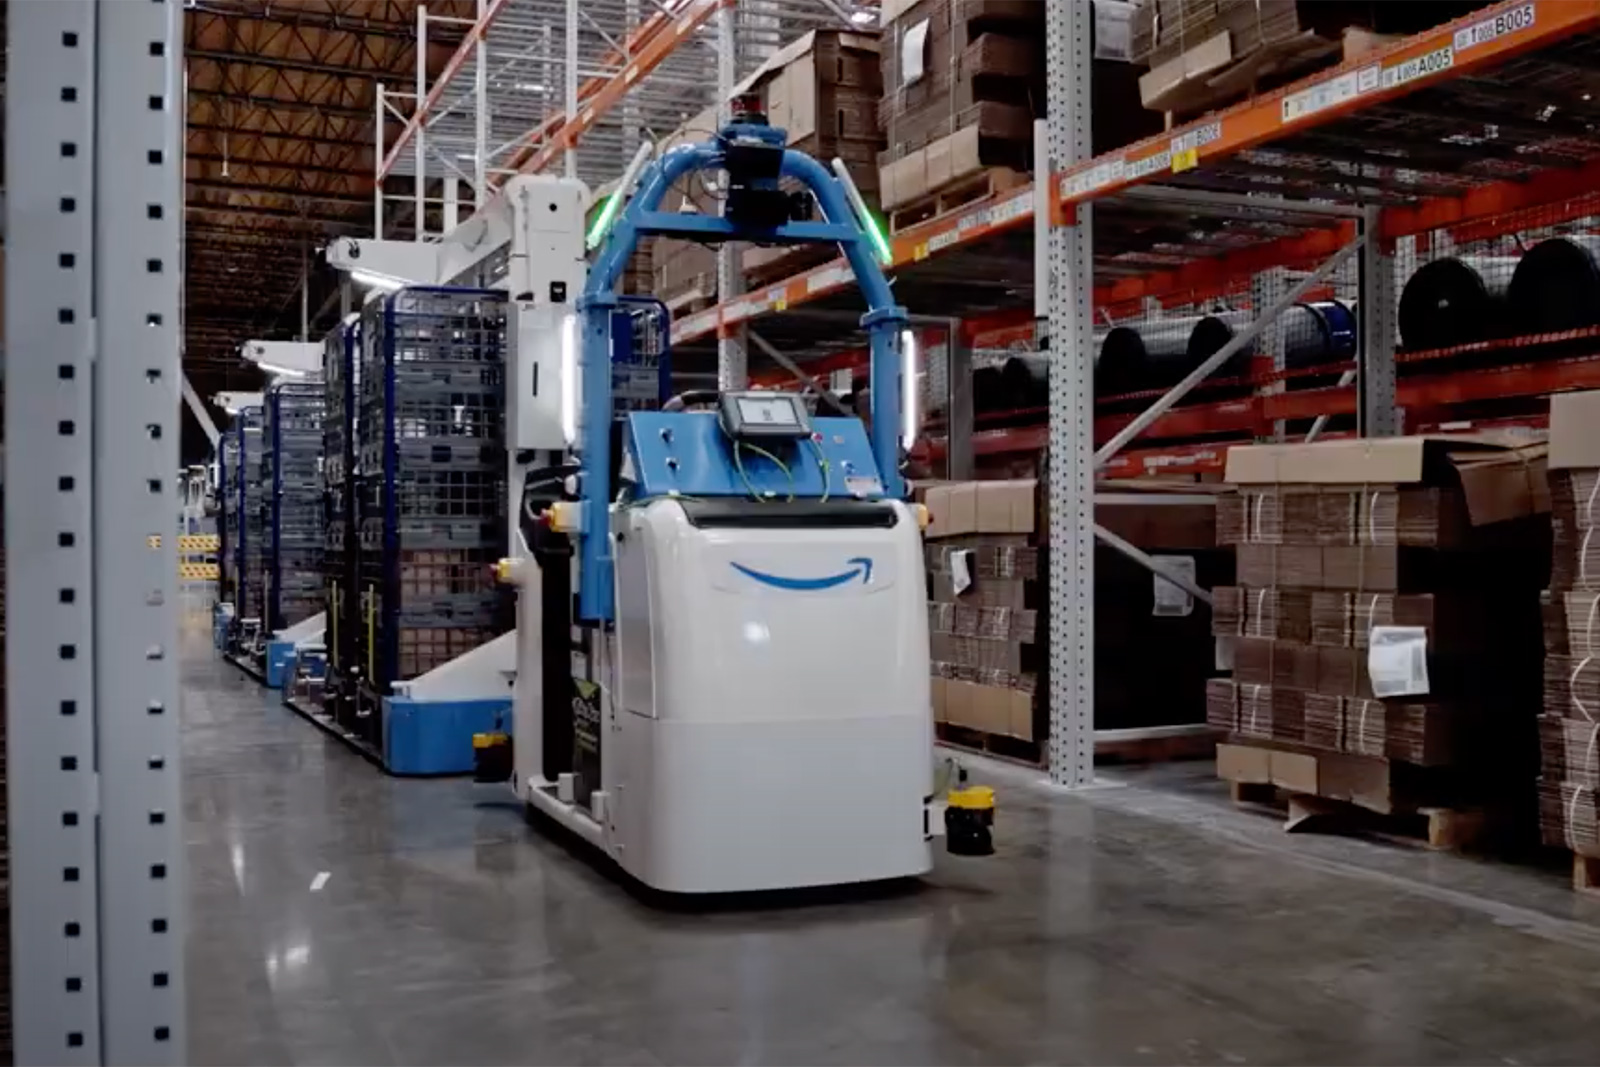 Amazon hopes more robots will improve worker safety   Engadget